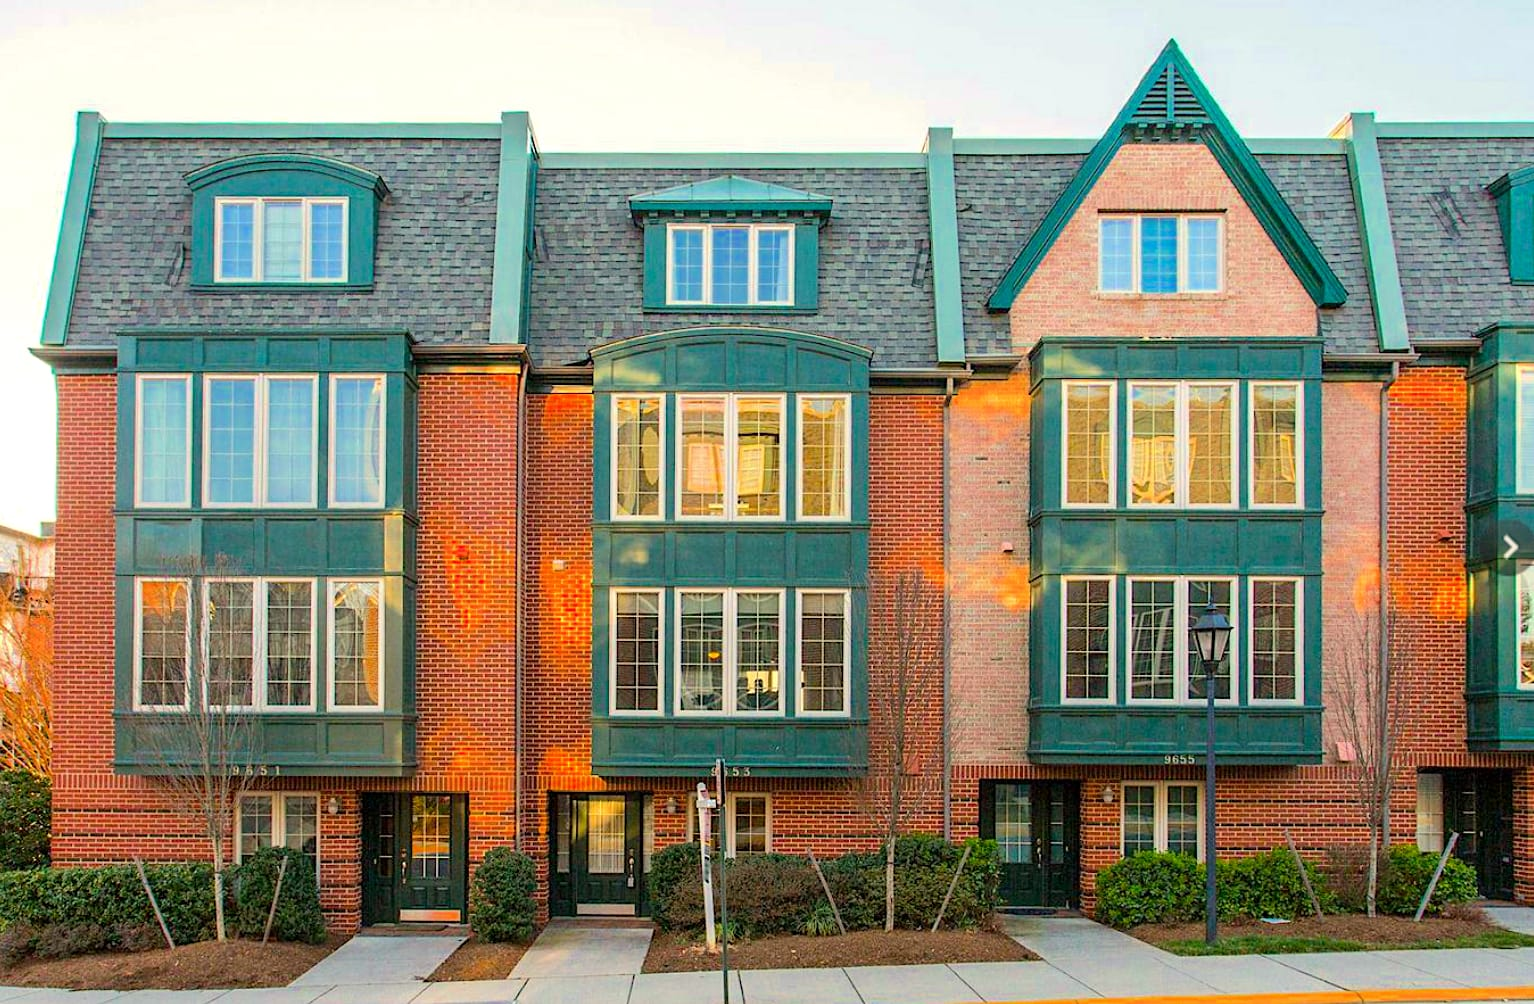 Tudor style townhomes with red brick and green trim at Beech Grove